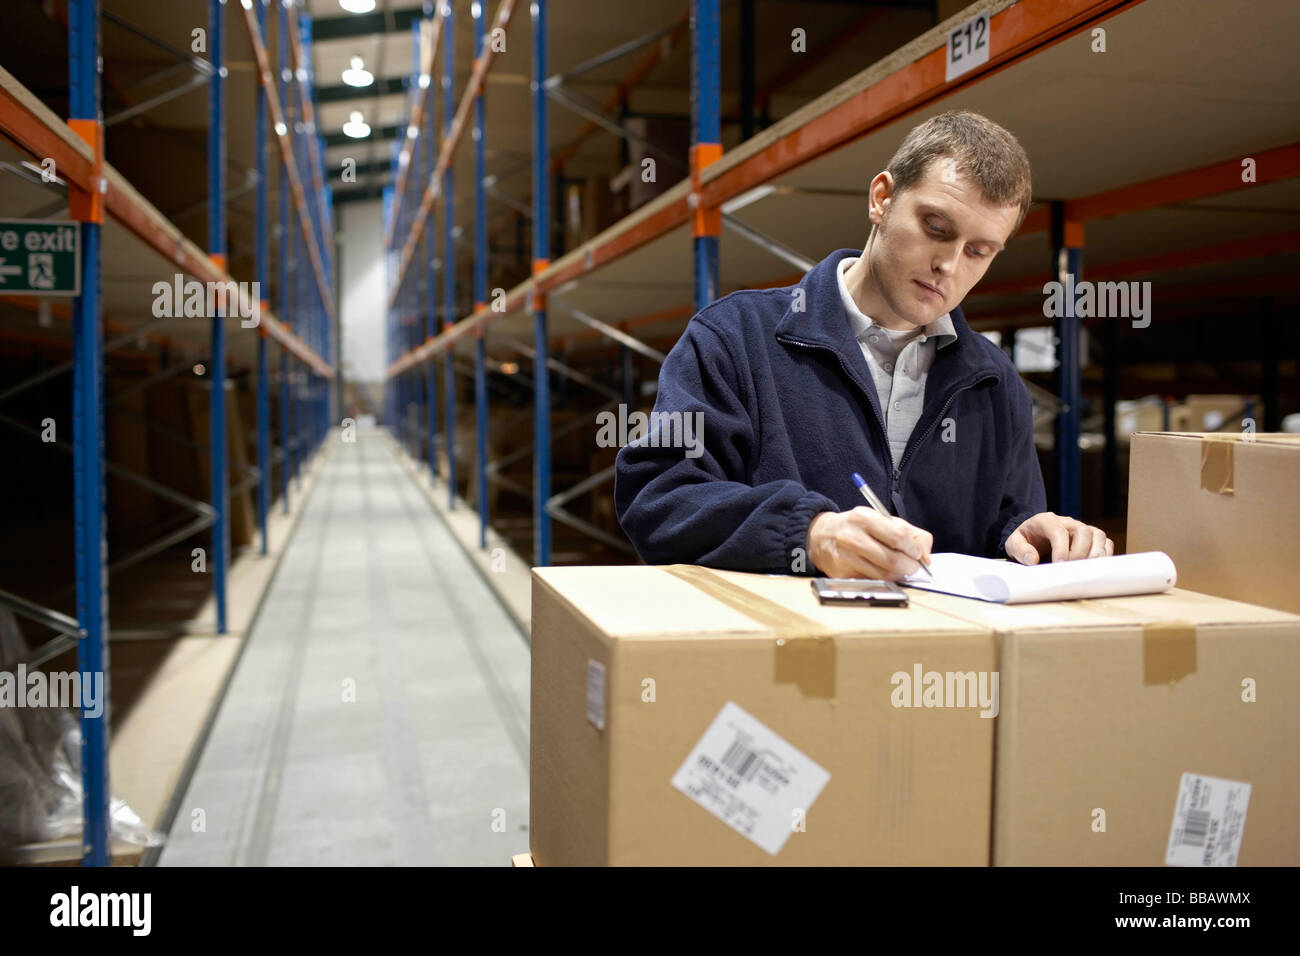 Worker filling in paperwork in warehouse Stock Photo